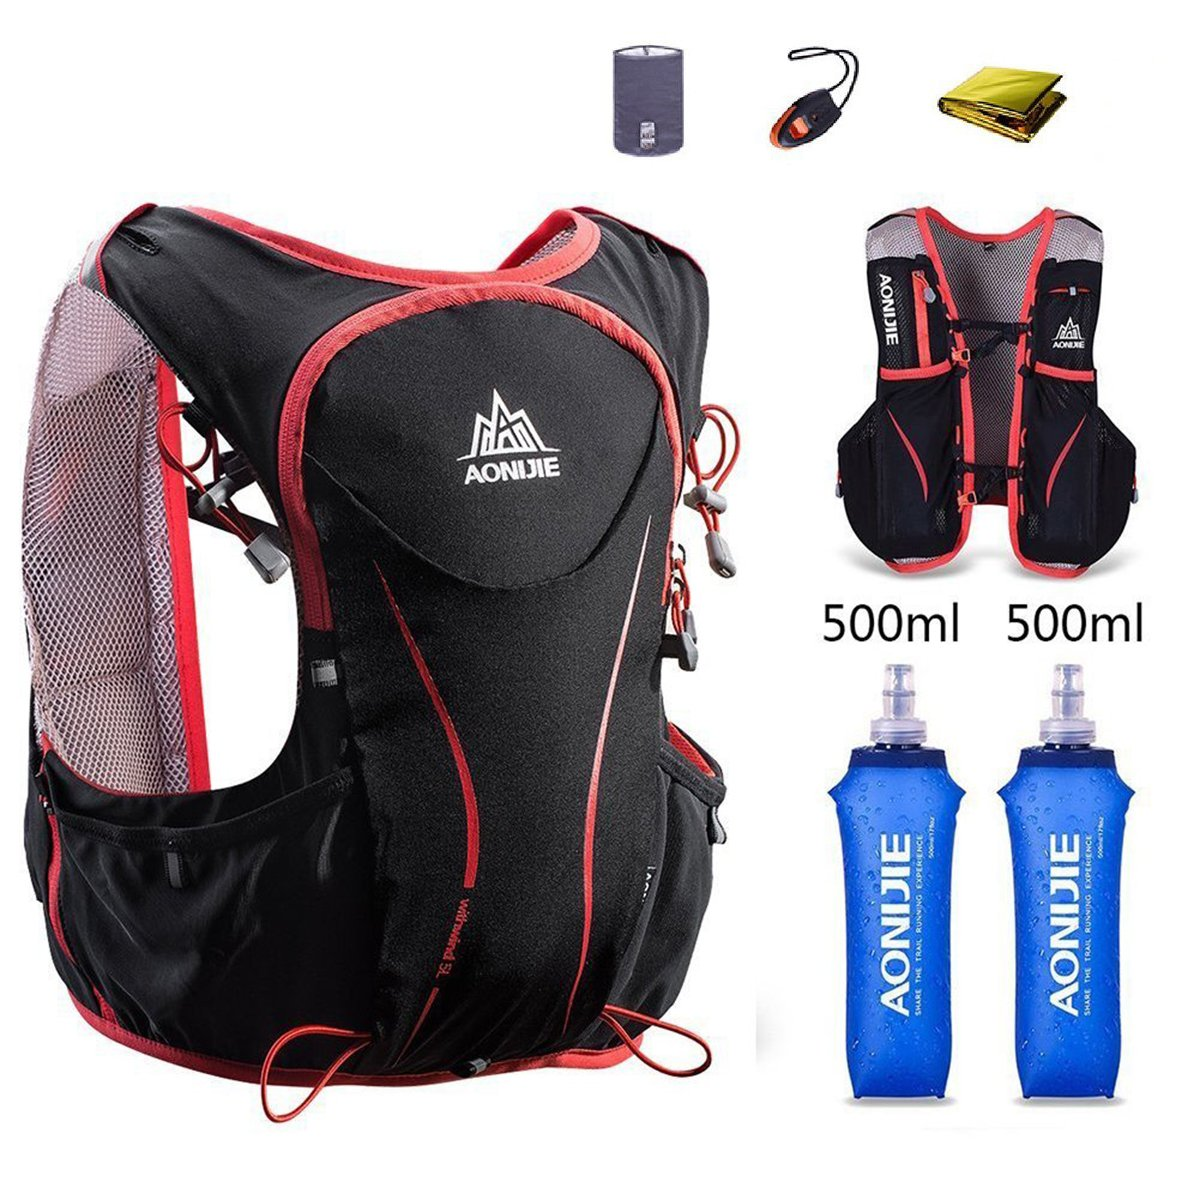 AONIJIE Hydration Pack Backpack Deluxe Lightweight 5L Outdoors Hydration Vest for Marathon Trail Running Race Hiking Camping Cycling (Black+ 2x500ml Water Bottle, S/M)